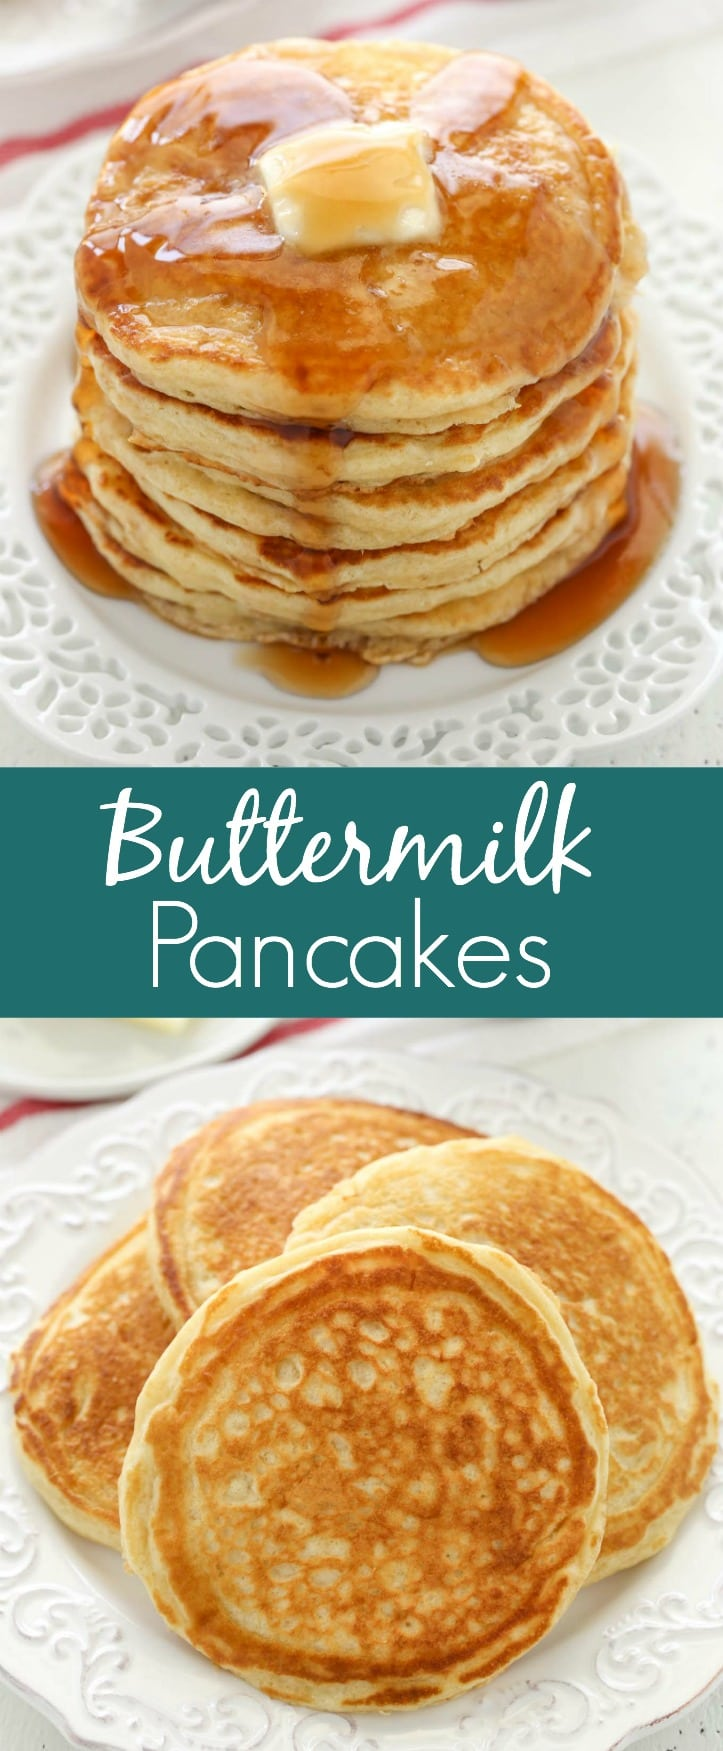 These light and fluffy buttermilk pancakes are so easy to make and turn out perfect every single time. Perfect for breakfast, brunch, or even dinner!